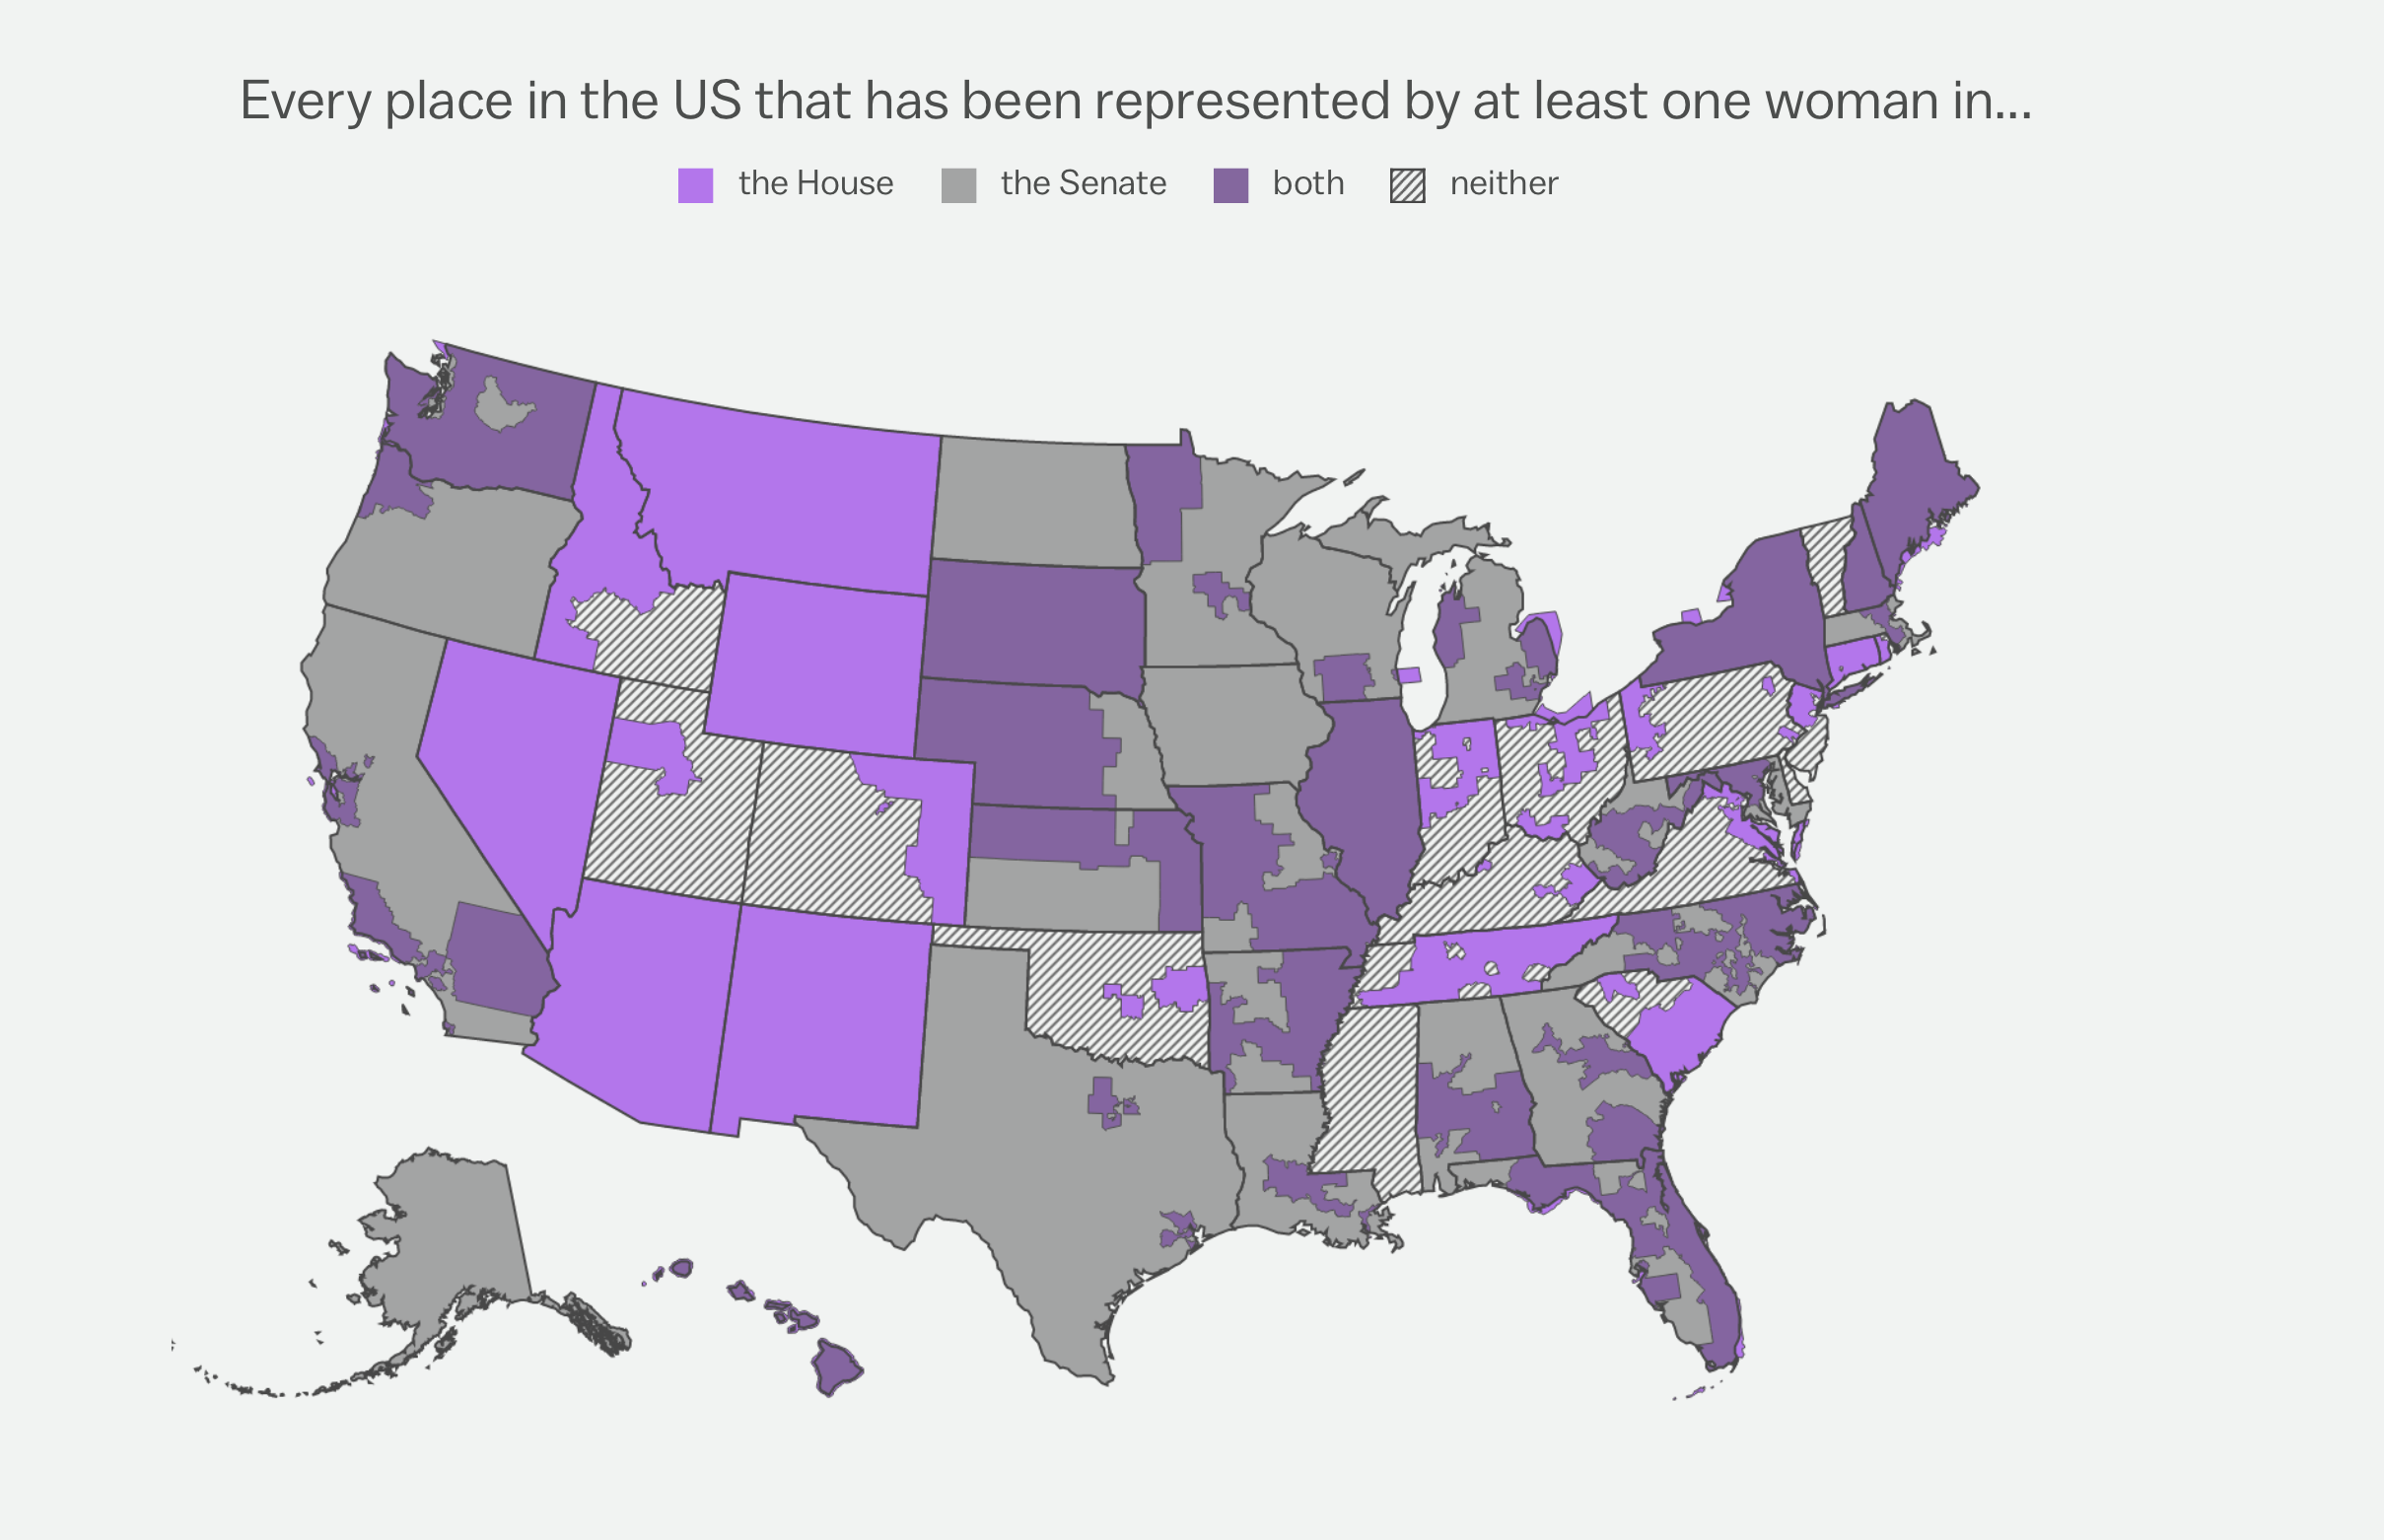 Did you know? - Currently women occupy only 17% of national elective office. In the Missouri House, only 25% of the representatives are women. The Missouri senate, 14% are women. In Kansas House, only 25% of the representatives are women. Kansas Senate, 32% are women.